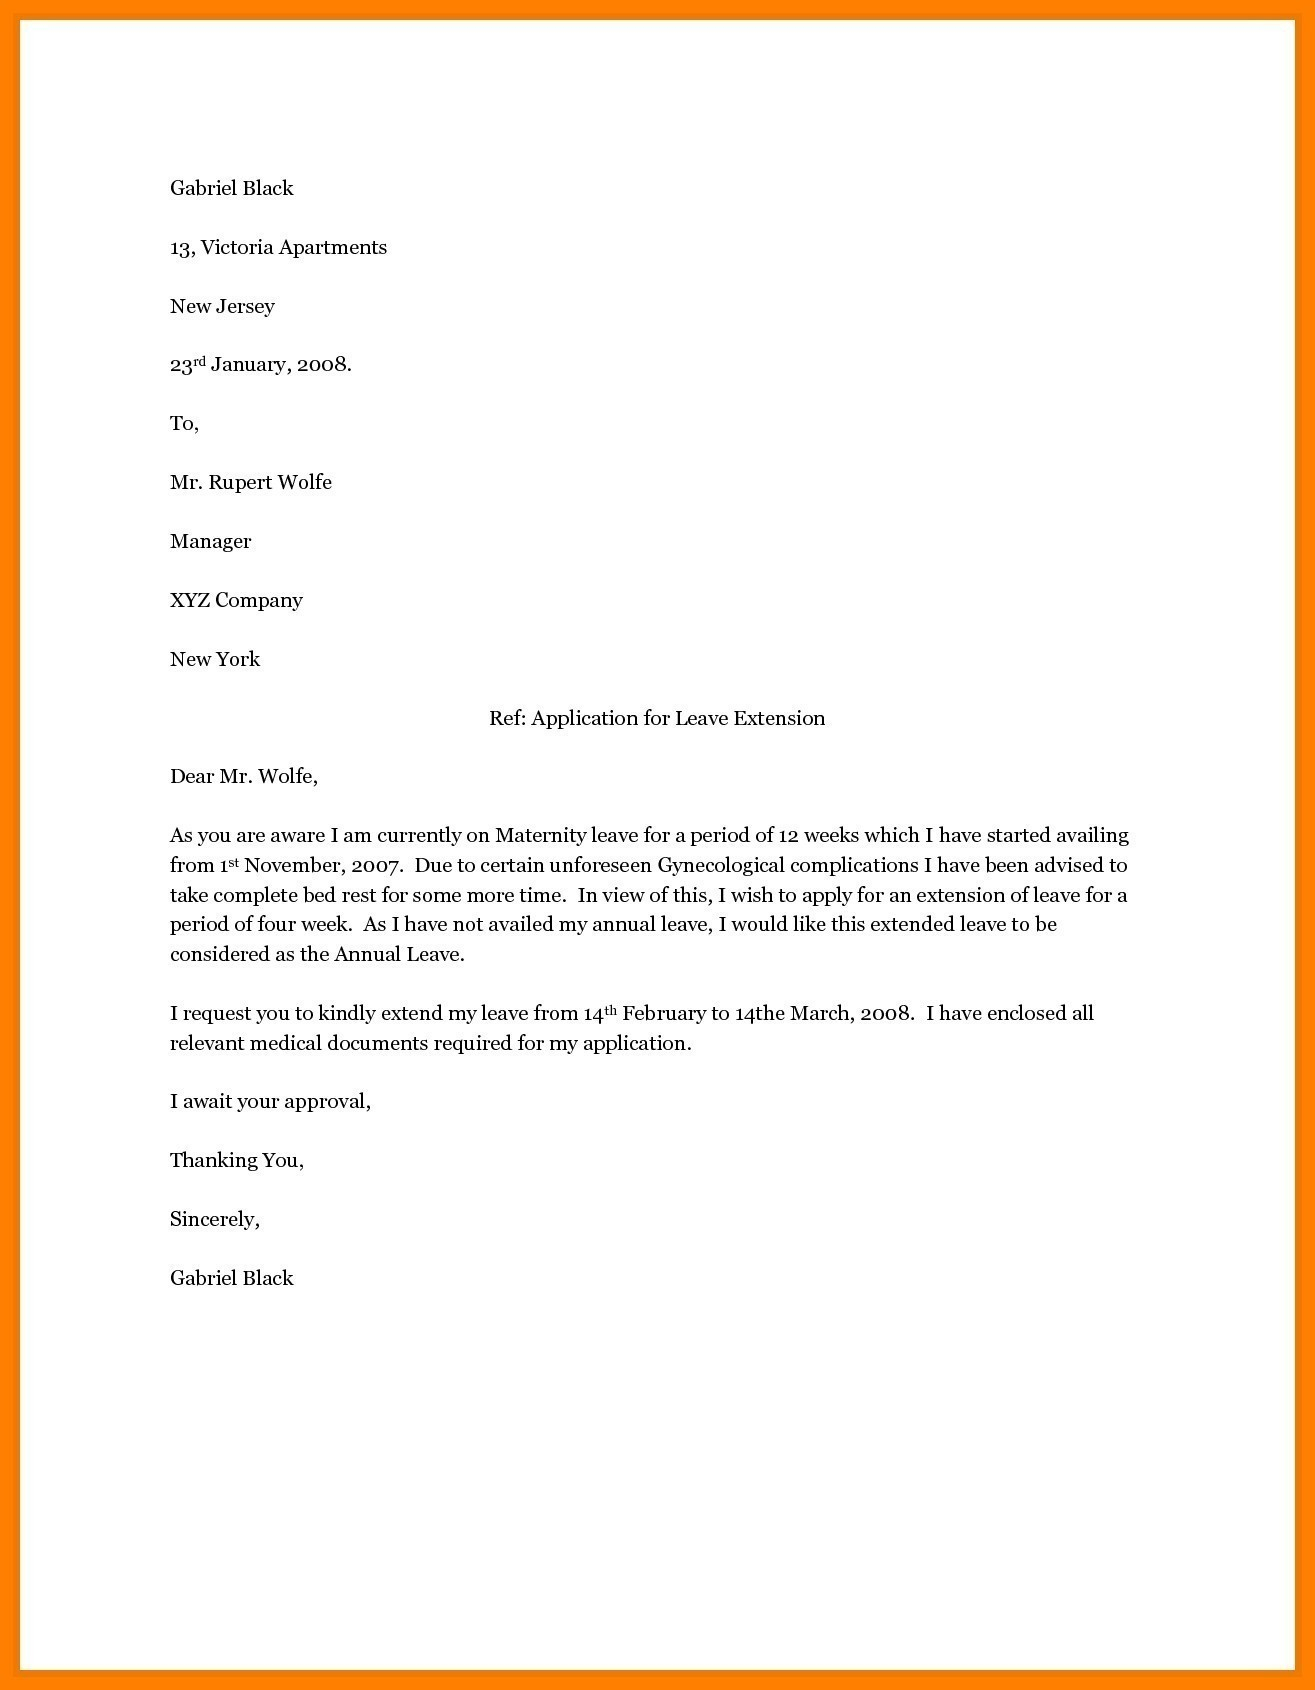 Pregnancy Letter From Doctor Template - Letter Template Maternity Leave Best Professional Letter format with